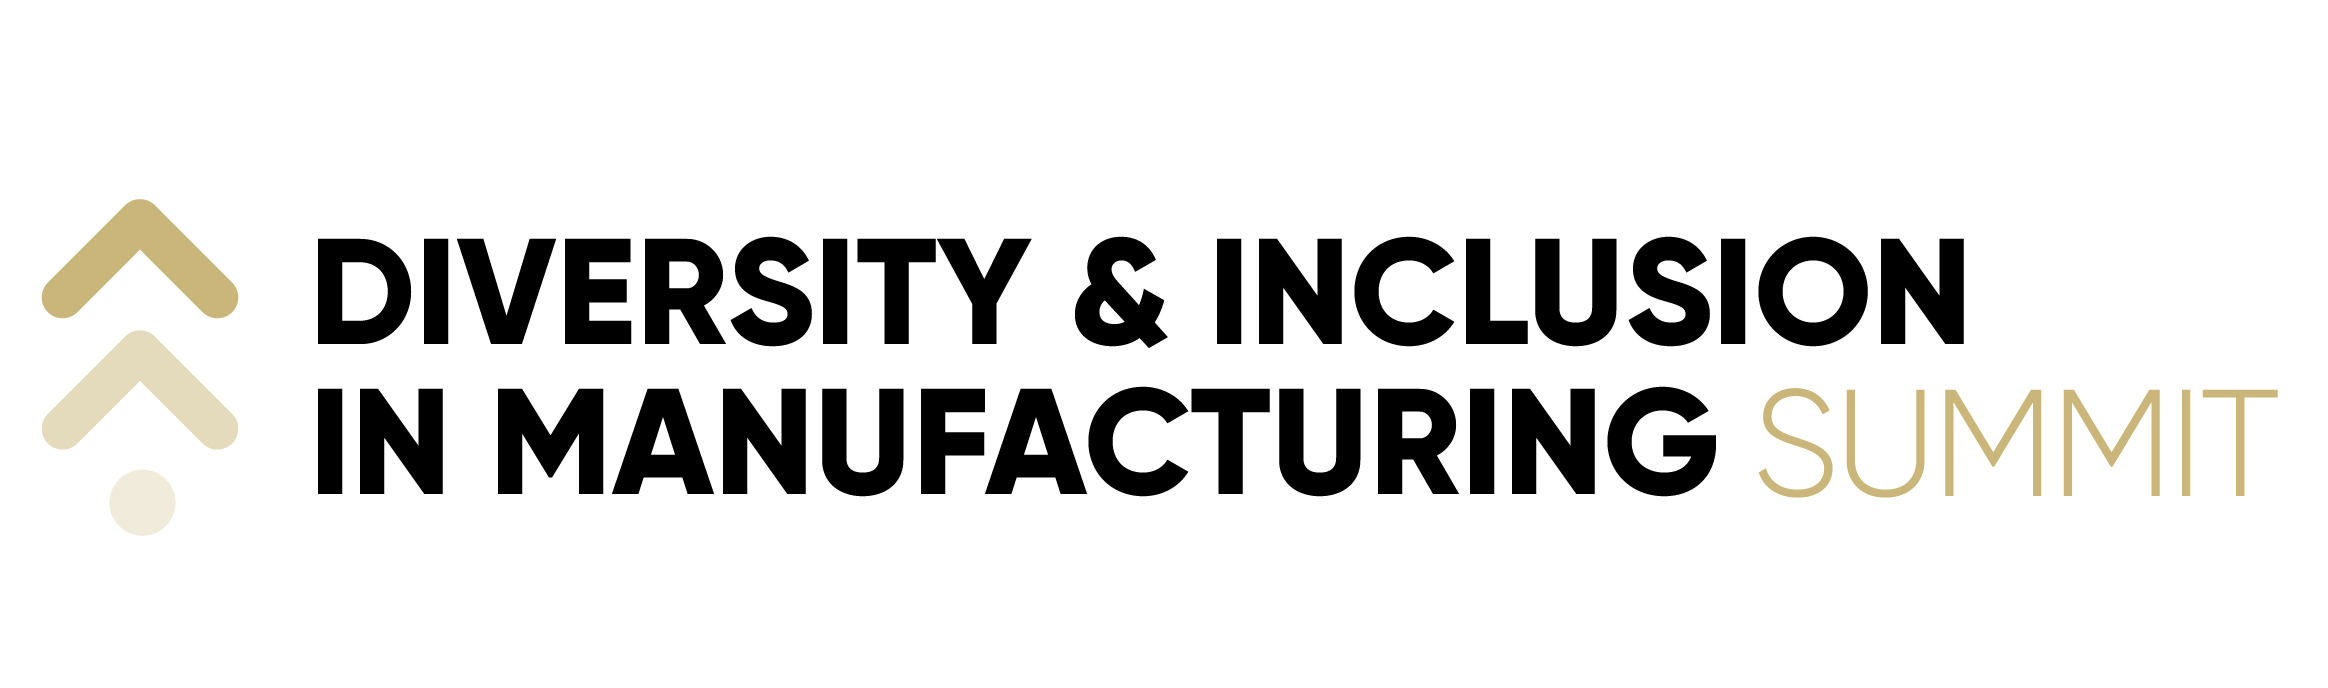 Diversity & Inclusion in Manufacturing Summit